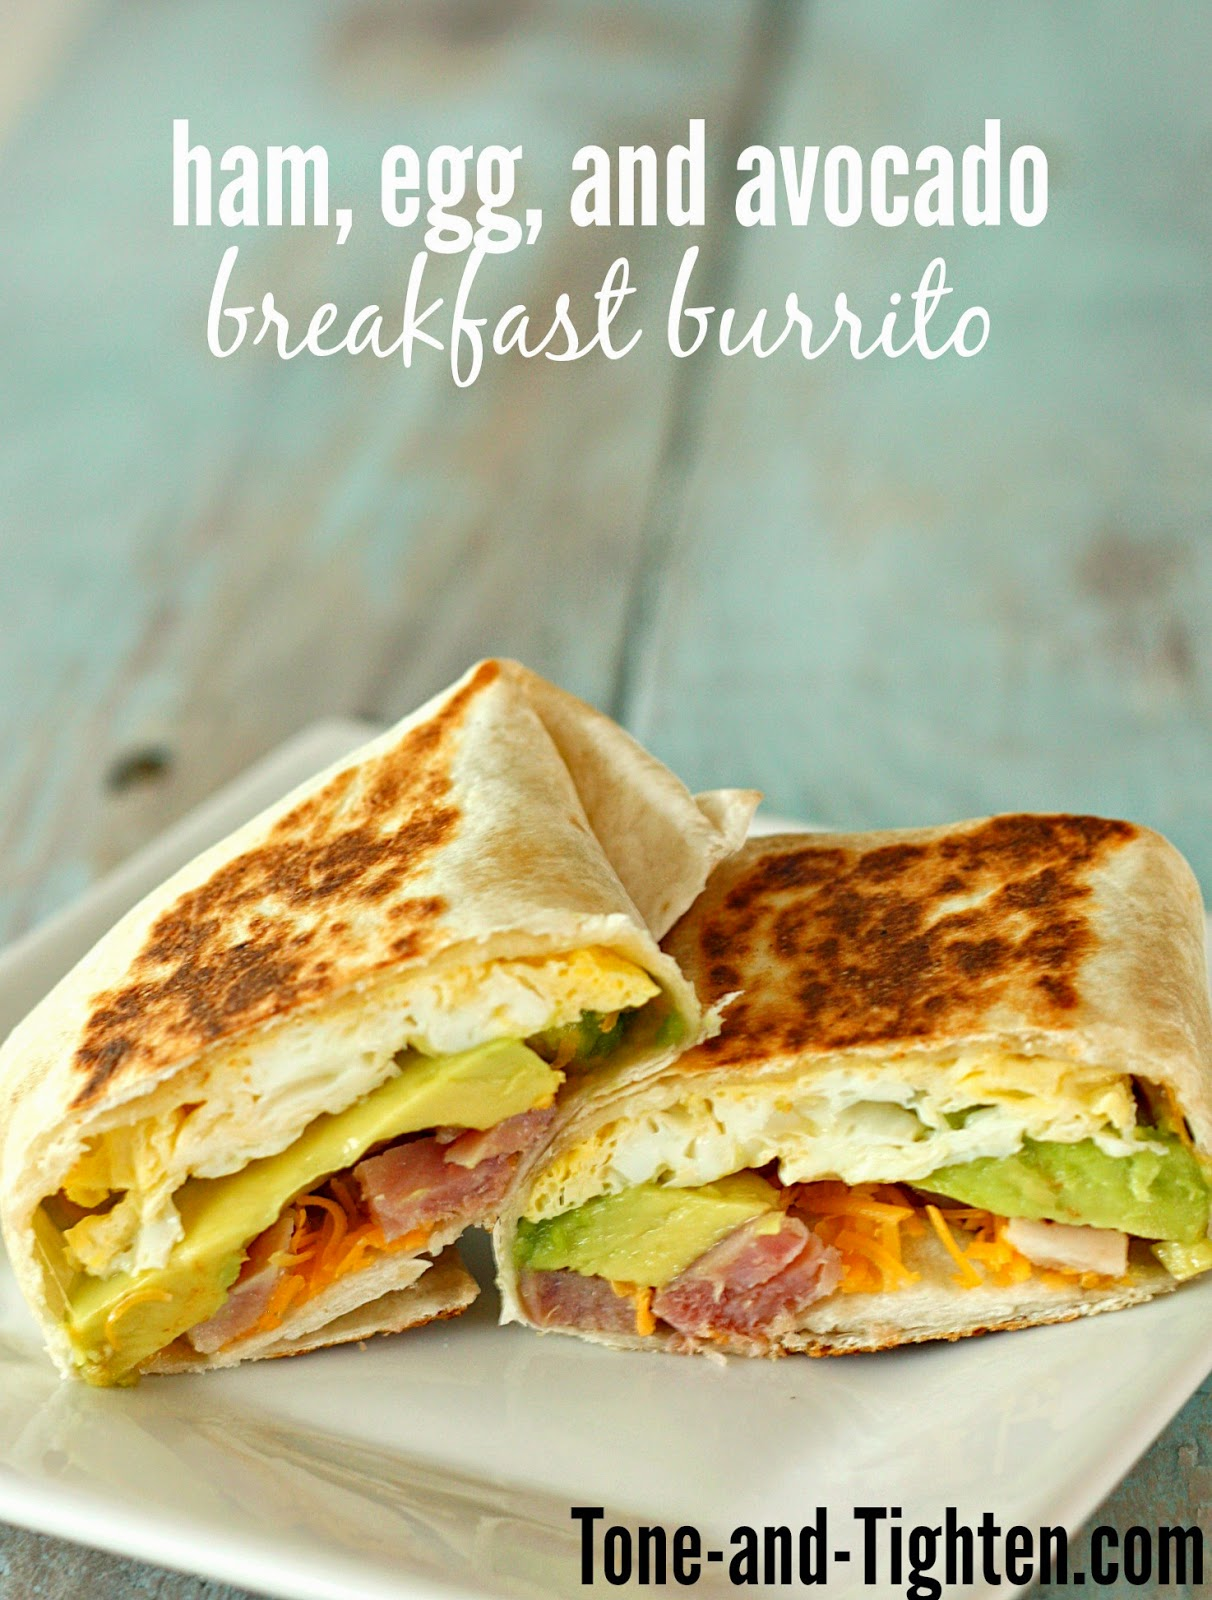 Royalty Free Stock Photography Italian Ham Image18001017 further Meat And Cheese Platter Ideas furthermore Fully Cooked Fried Chicken besides Pigsblanketskilted Sausage together with Ham Egg And Avocado Breakfast Burrito Recipe. on sliced turkey and ham